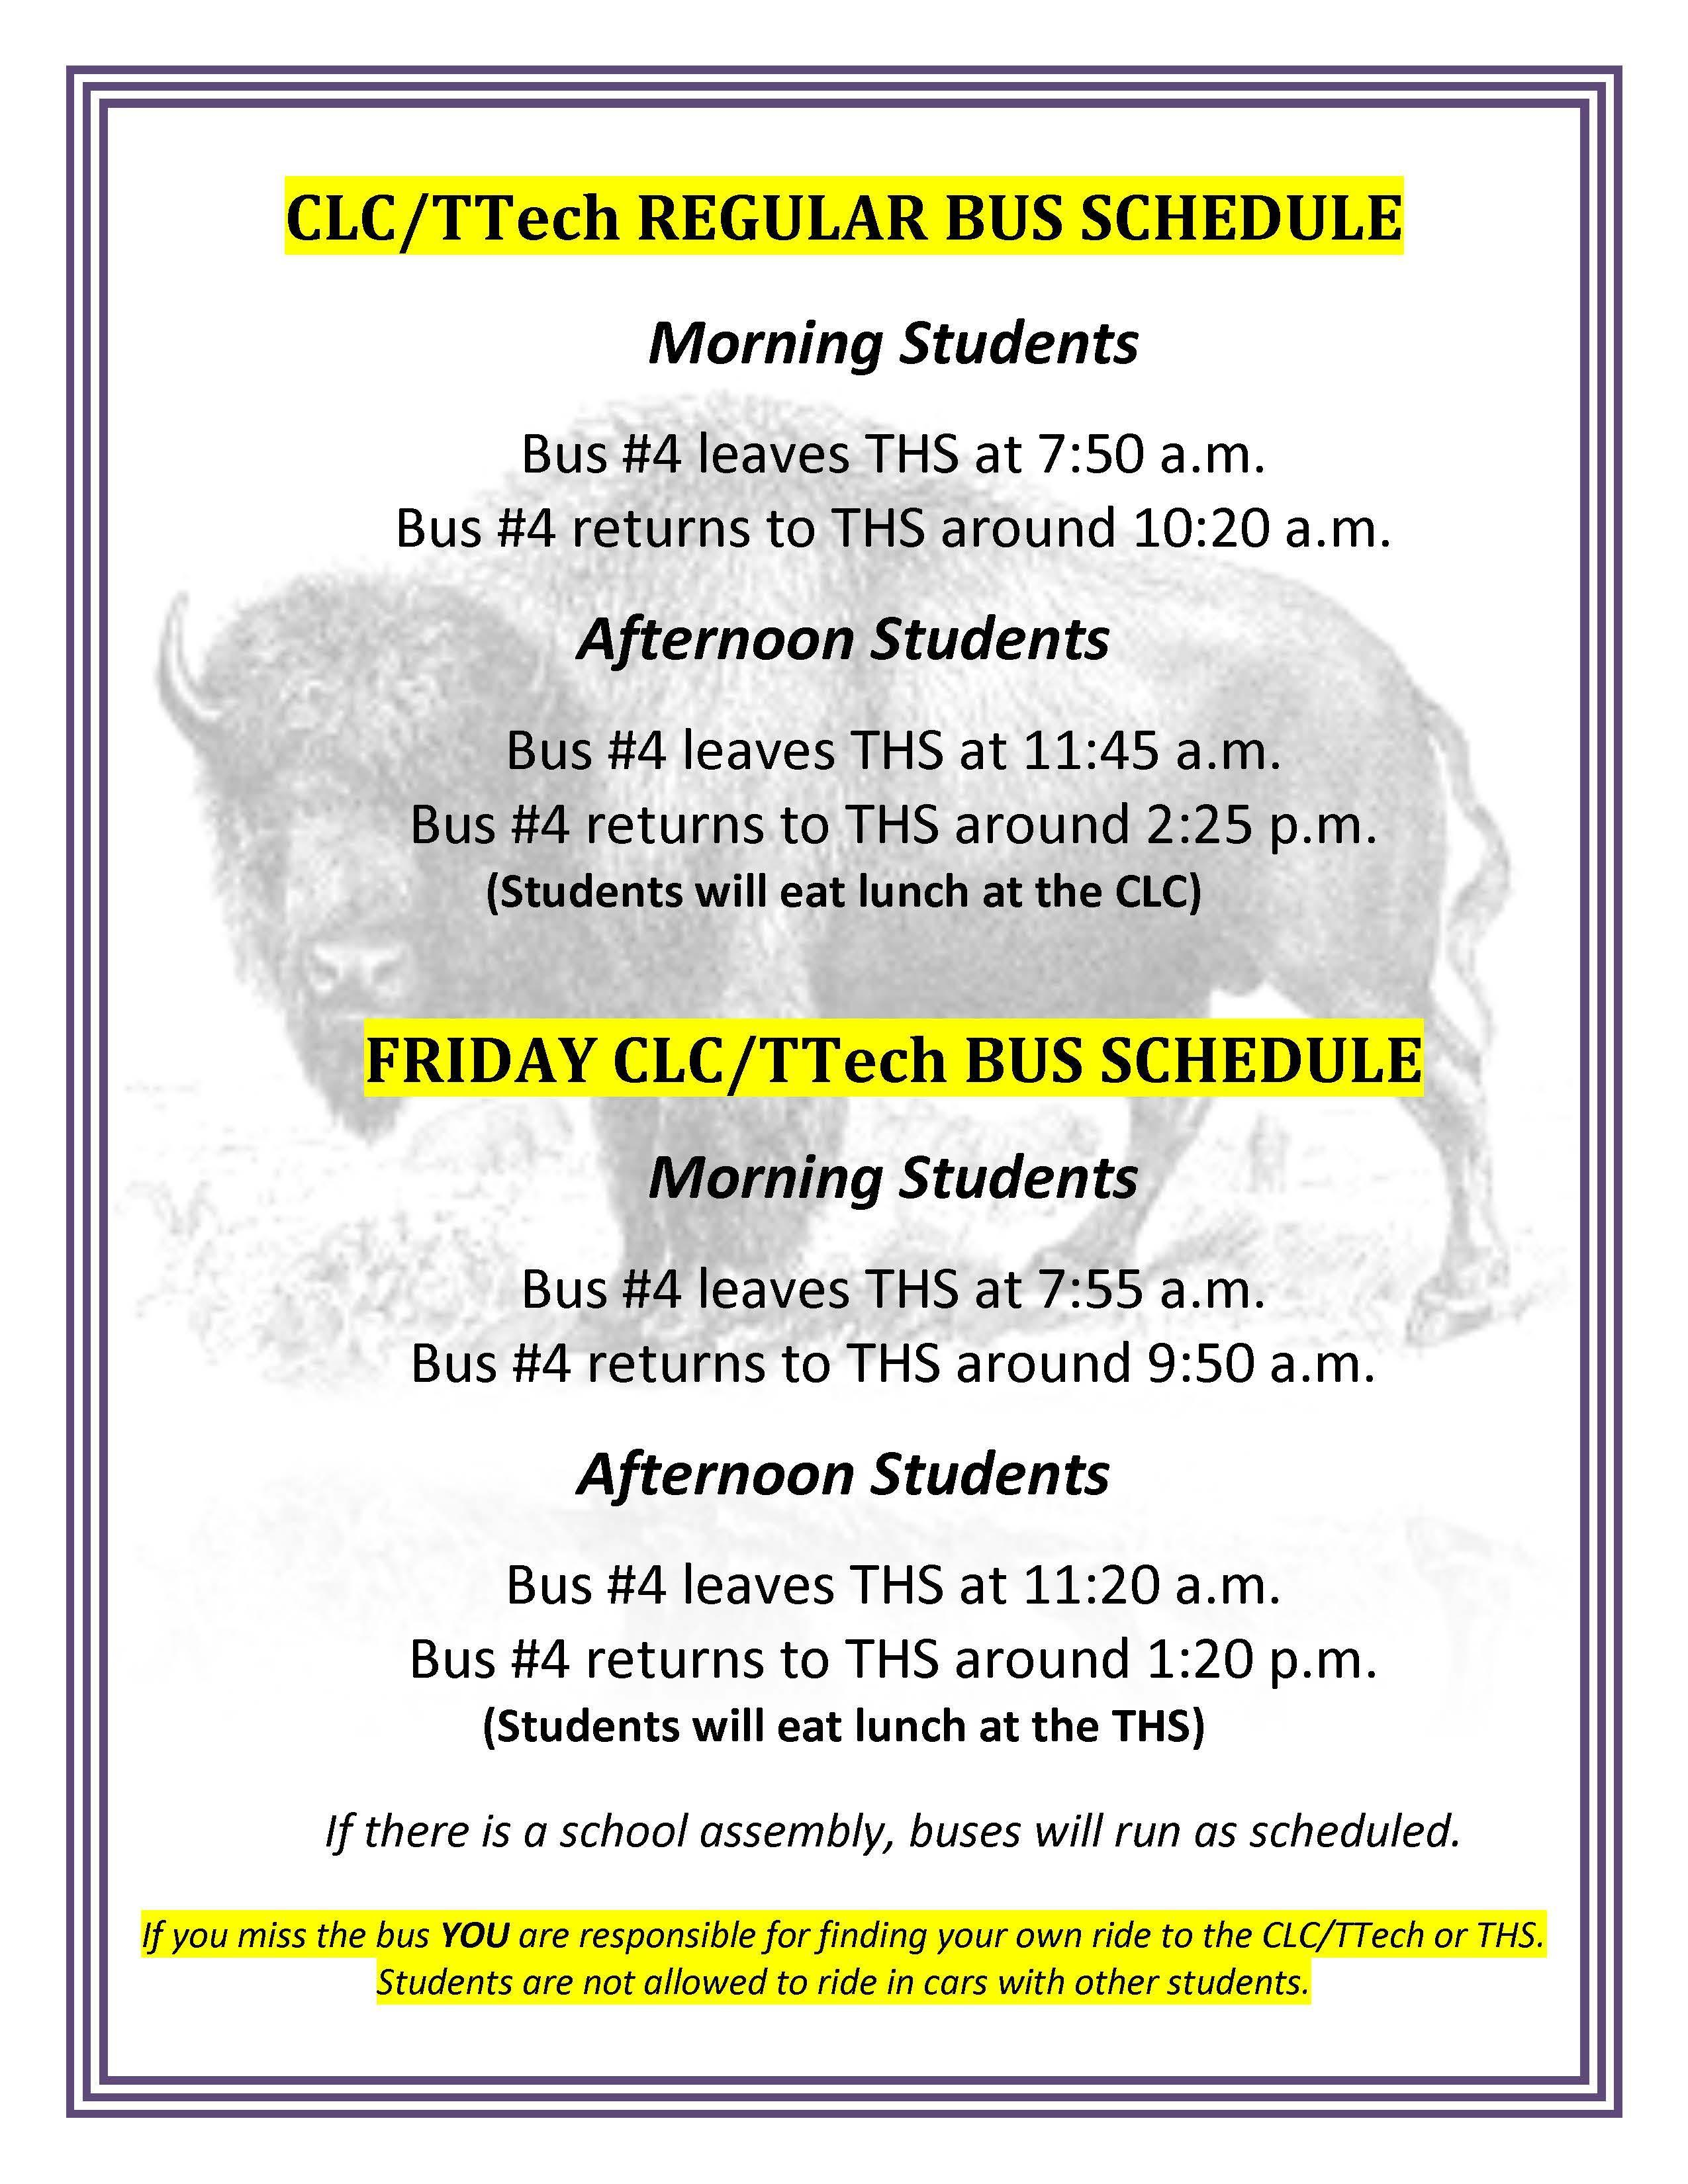 CLC bus schedule